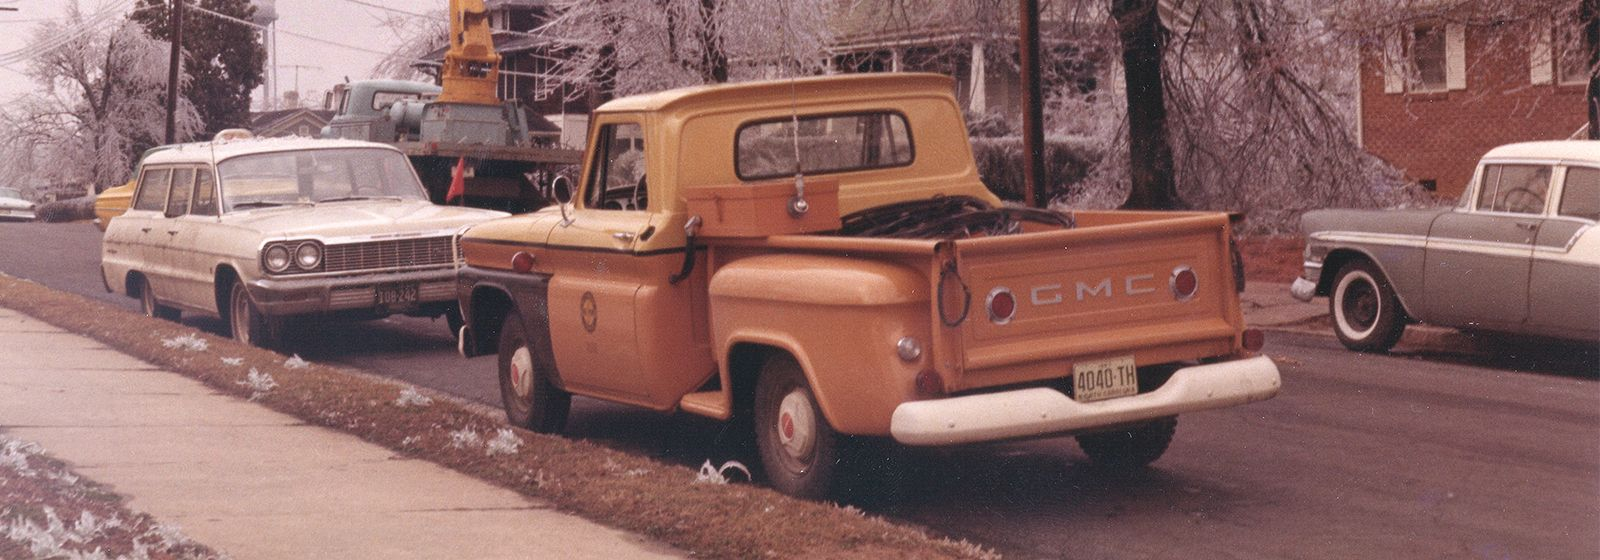 Retro photos: Keep on truckin'